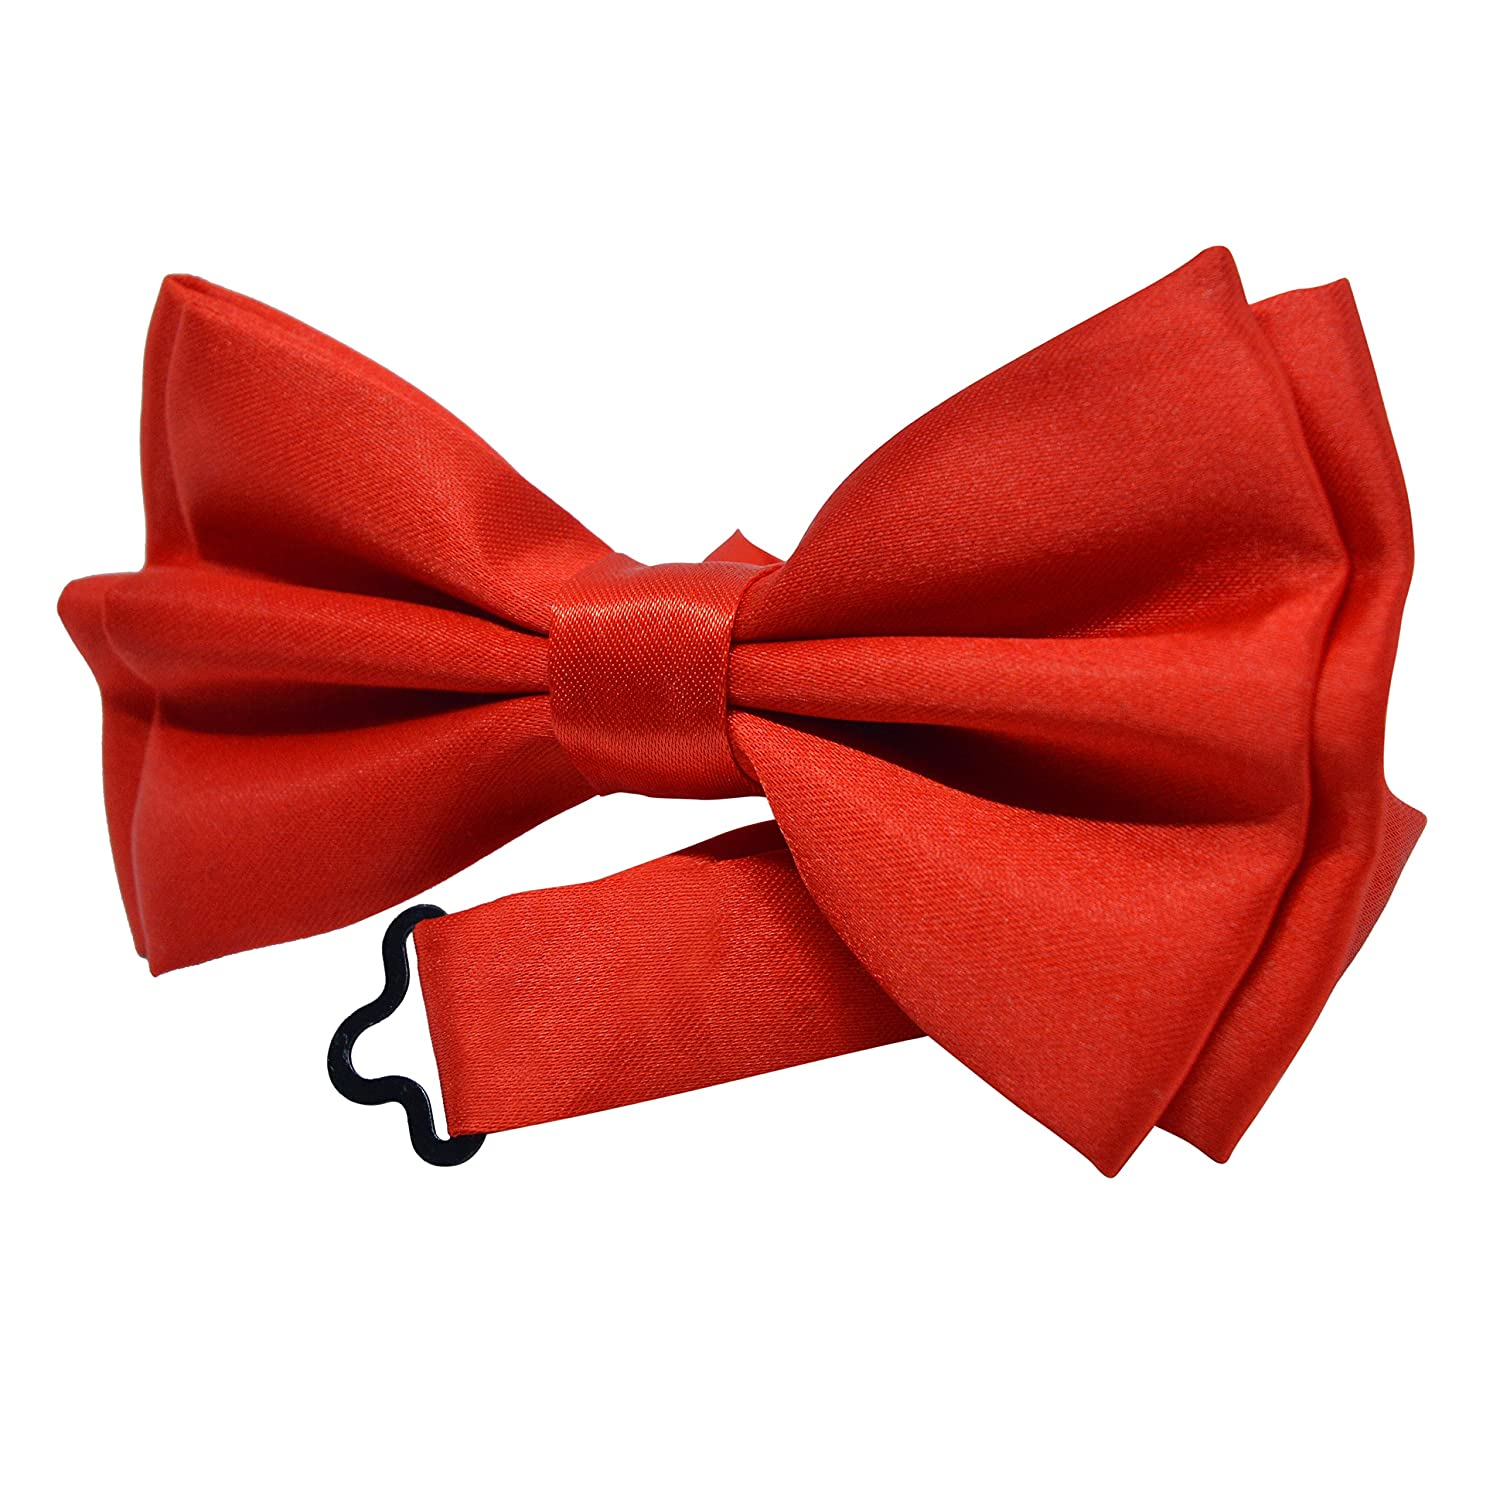 Bow Tie for Kids - Boys Girls Stylish Pre-Tied Bow Ties - Solid Color by Action Ward